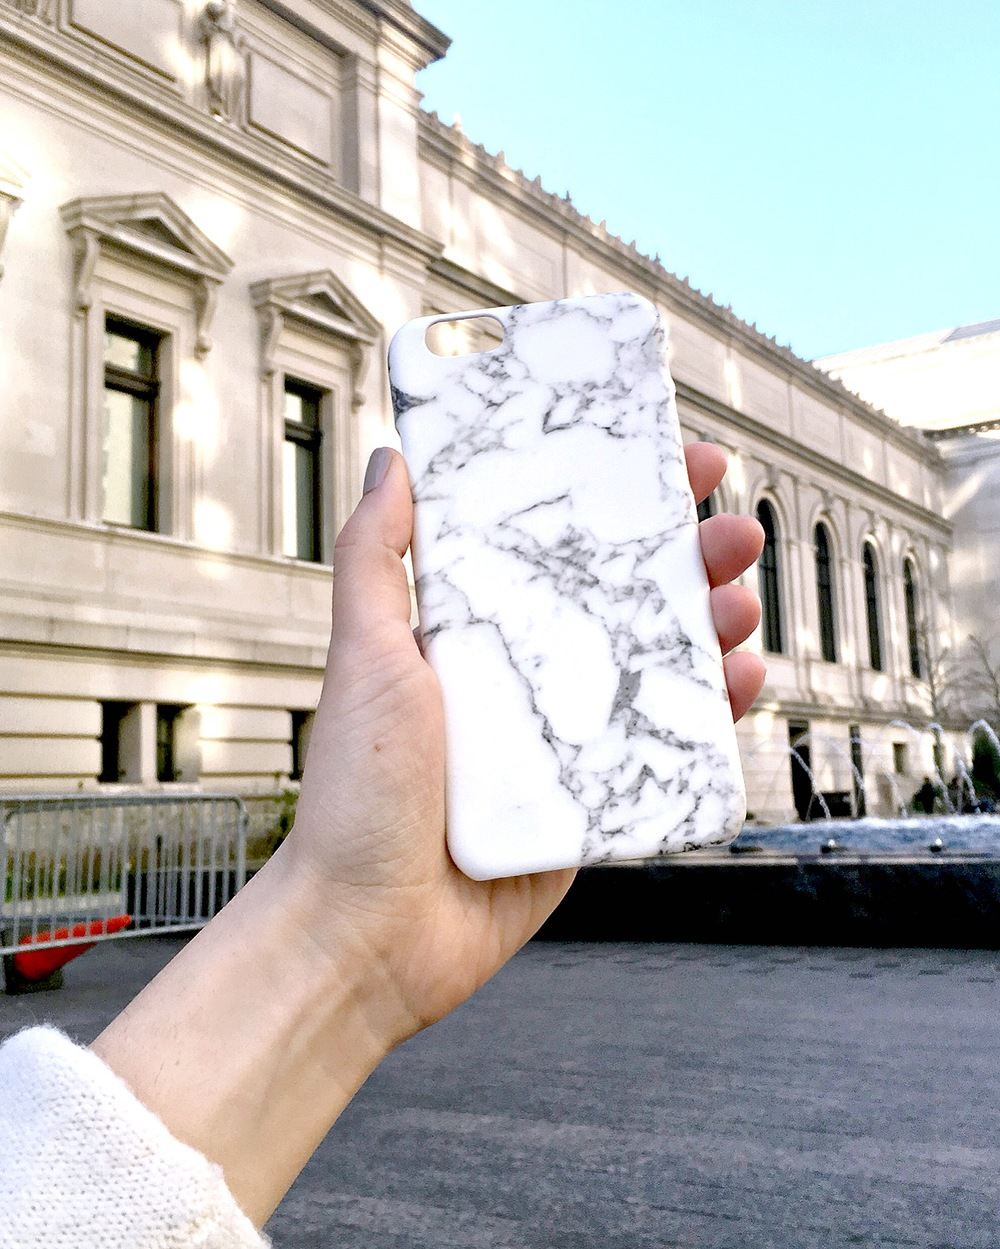 Marble iPhone Case Caseapp Louboutins & Love Fashion Blog Esther Santer NYC Street Style Blogger Product Review Model Girl Women Hair Choker Cold Shoulder Photography Photoshoot New York City Nails Phone Trendy Shop Giveaway Buy Discount Code Outdoors.jpg